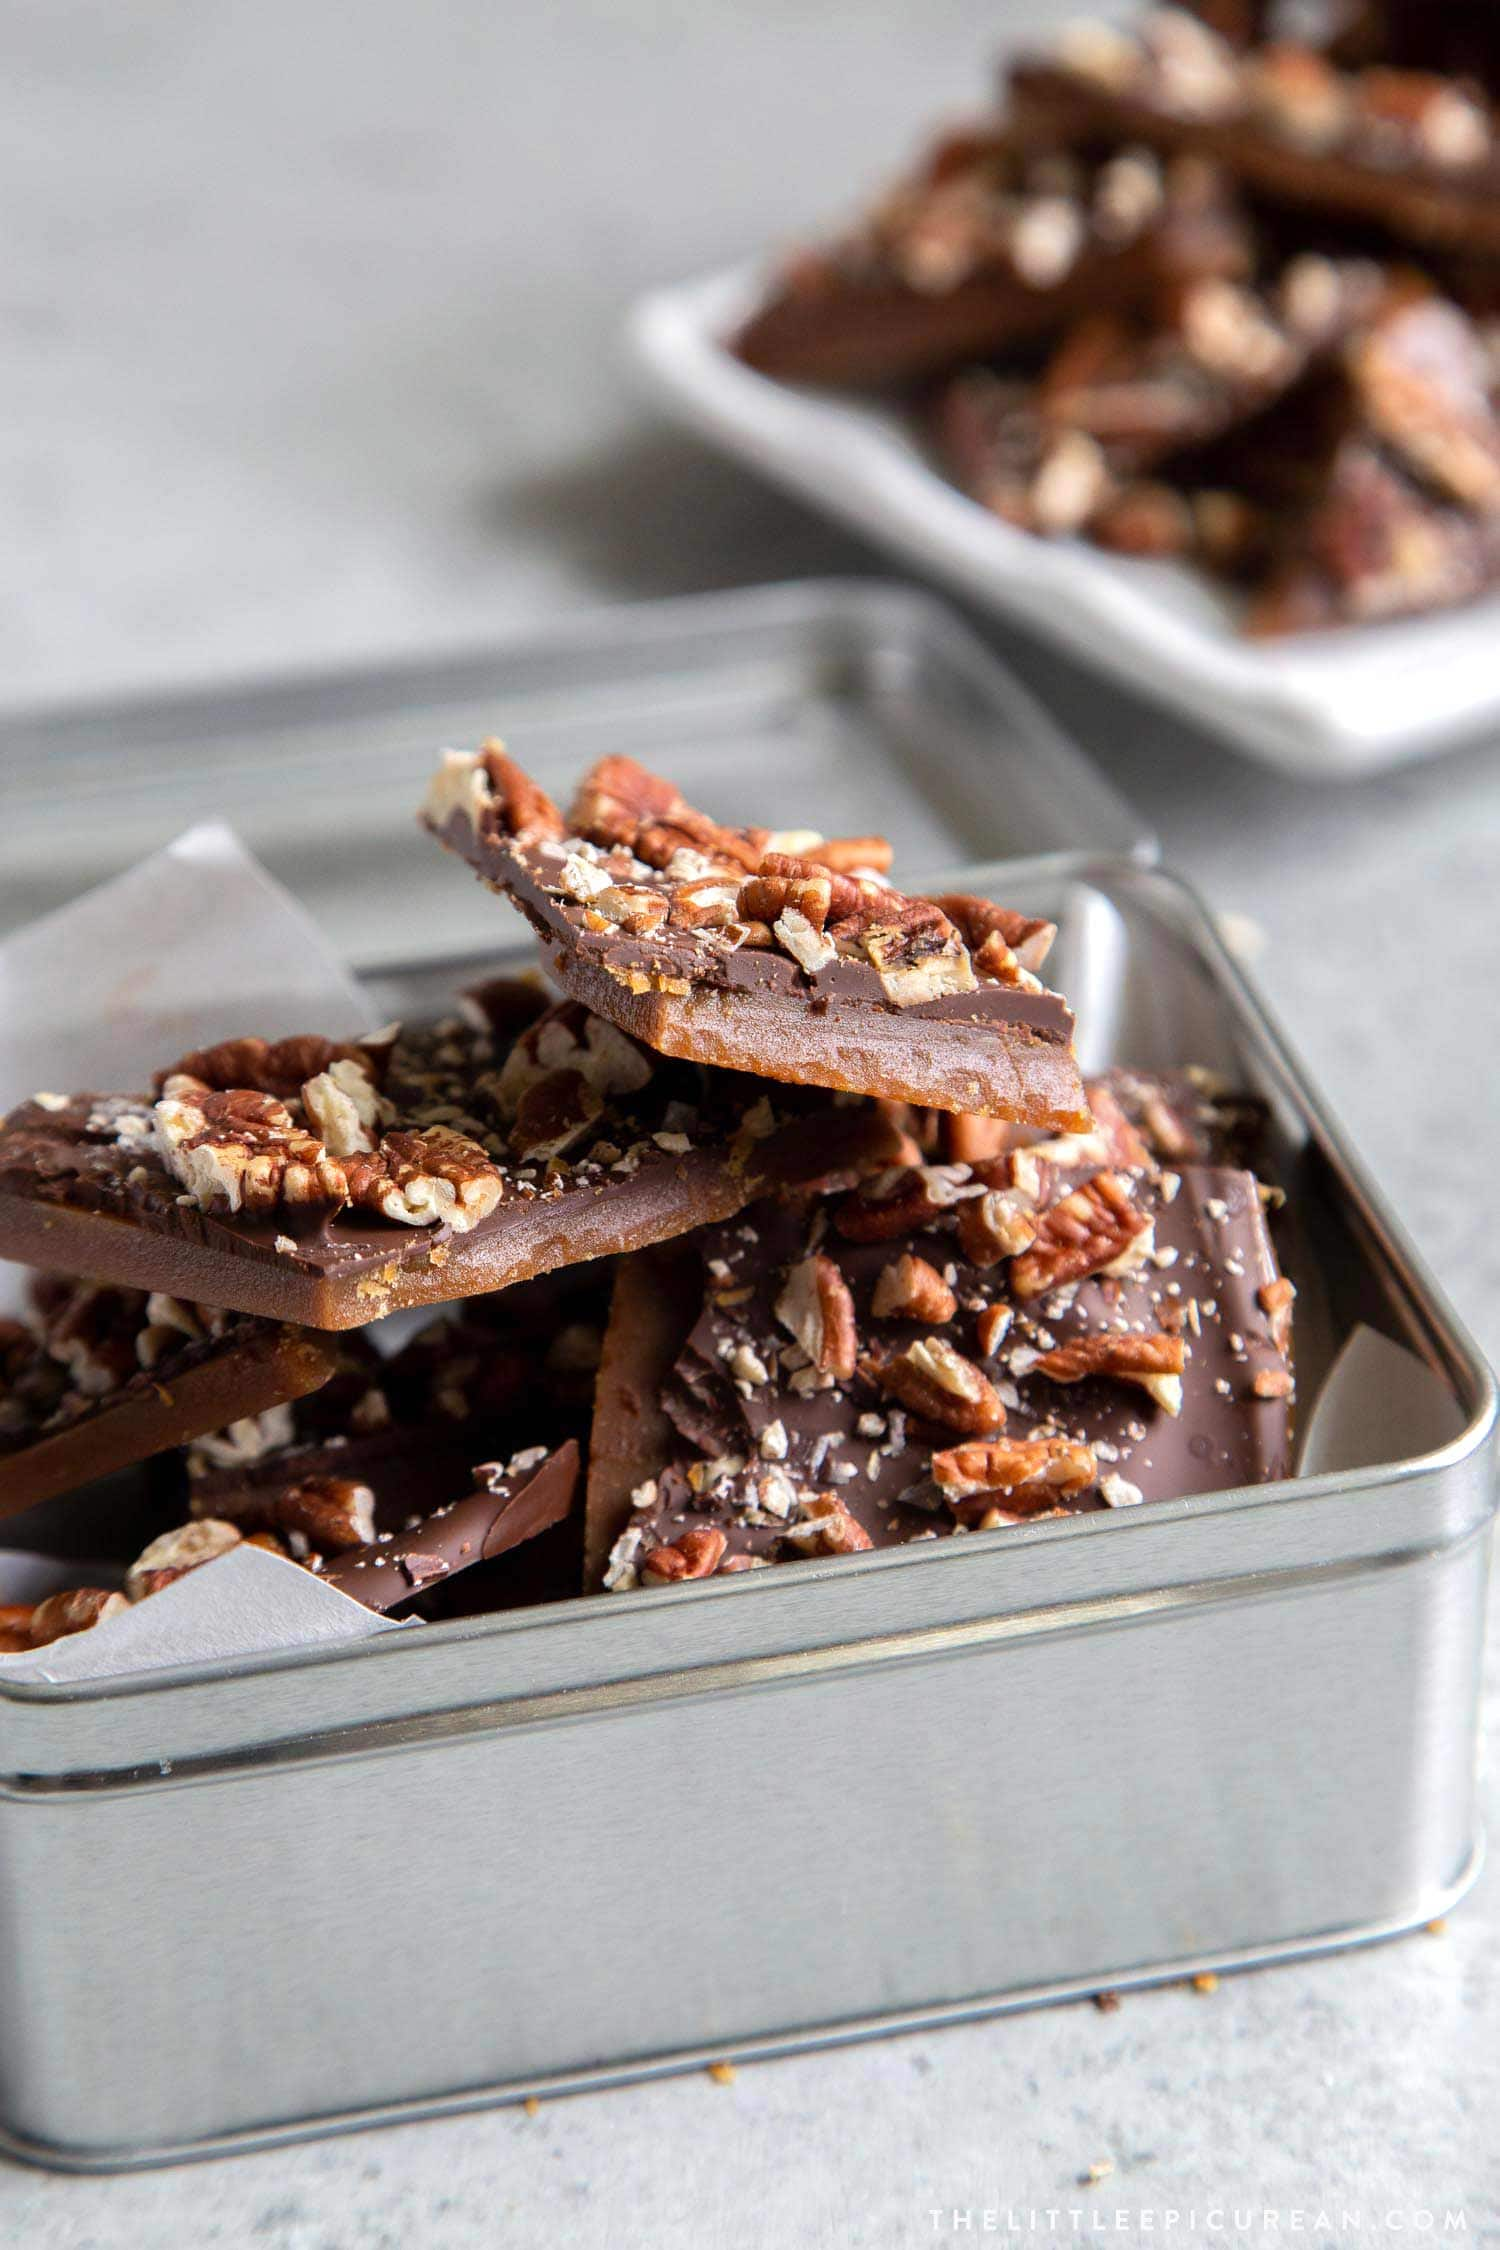 Homemade Pecan Chocolate Toffee Bark. This easy recipe is perfect for holiday gift giving. These DIY toffee candies make for great hostess gifts! #holidays #homemadegifts #DIY #homemadetoffee #toffee #toffeebark #chocolate